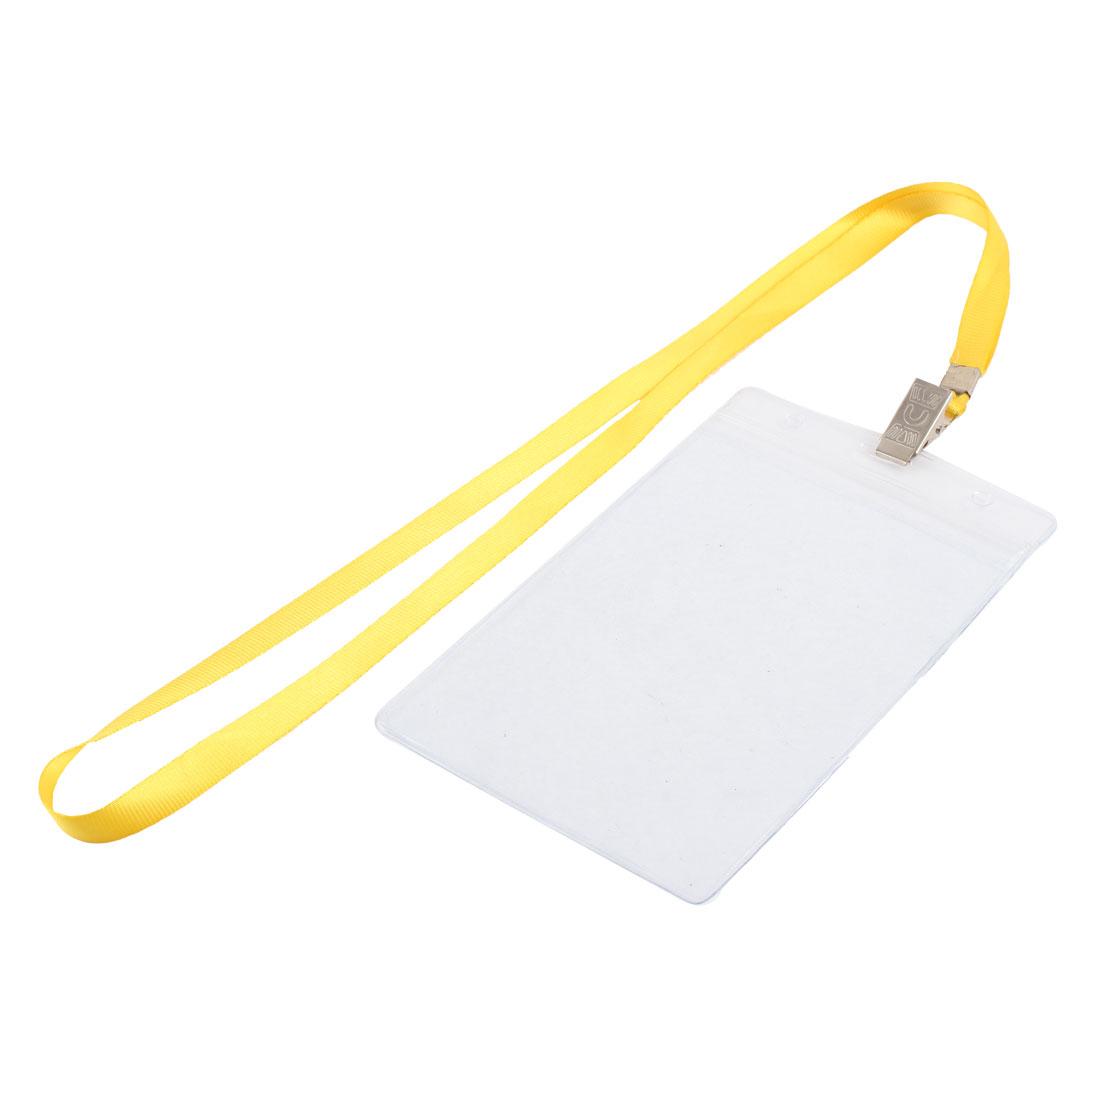 Clear Plastic Vertical ID Office Exhibition Badge Card Holder w Yellow Lanyard